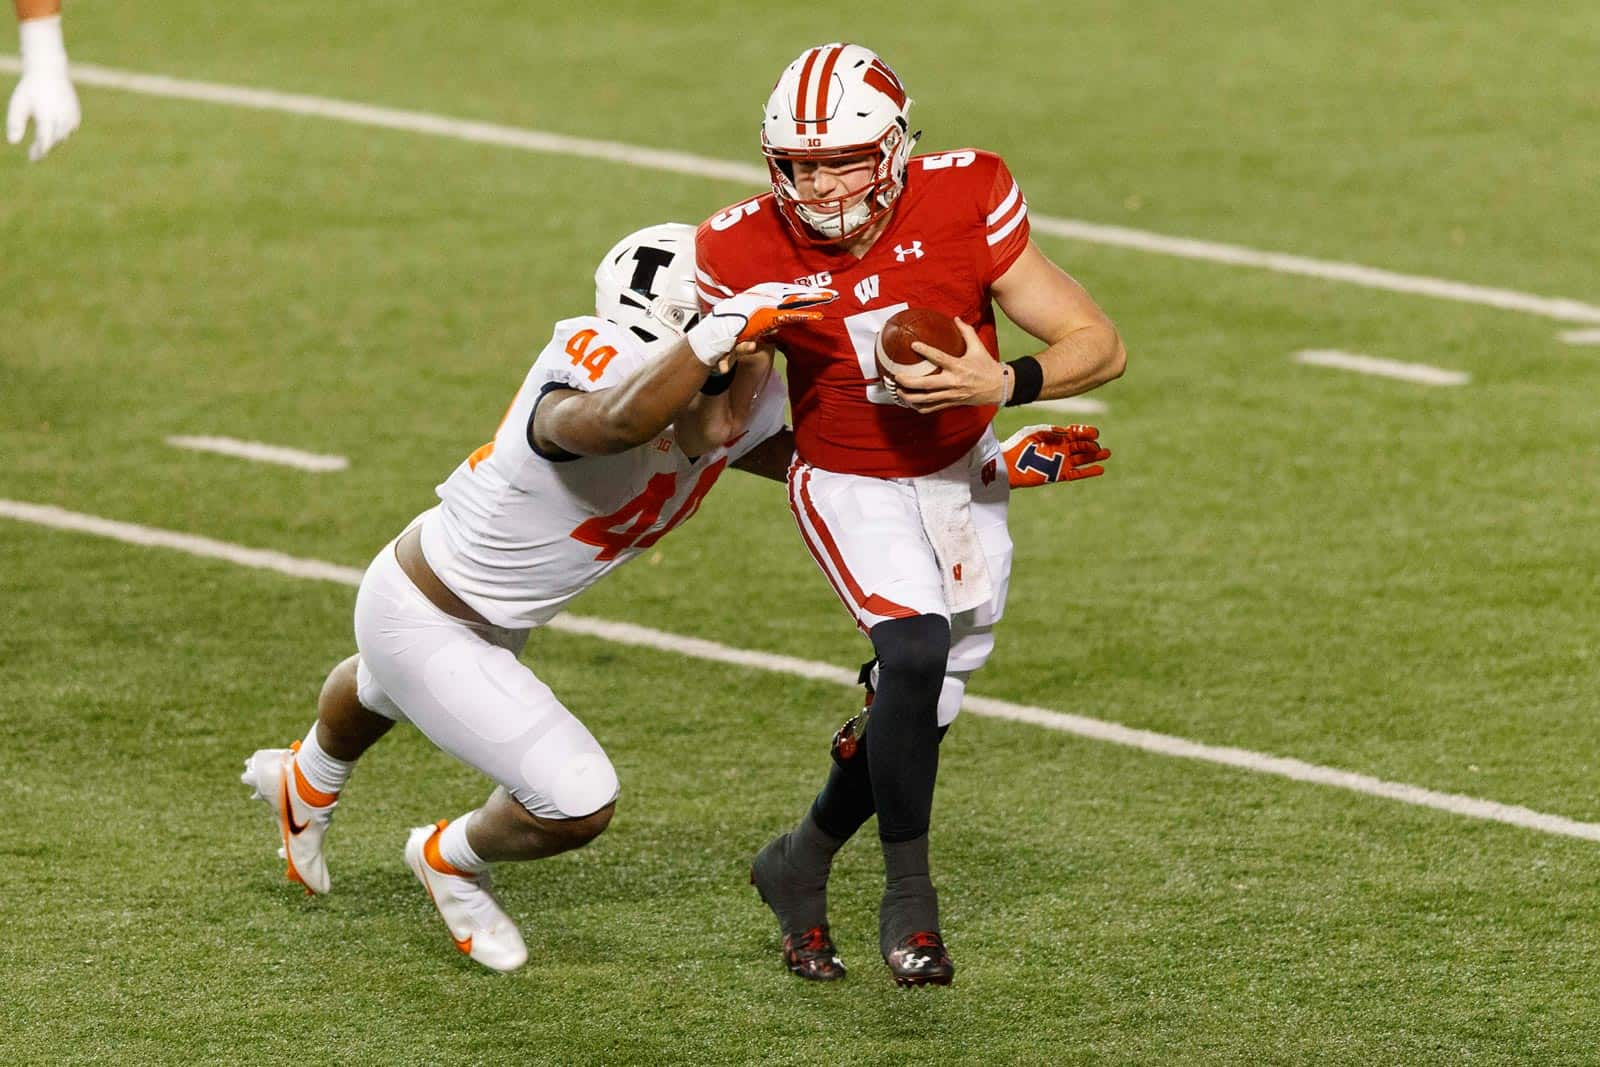 Saturday's Husker game canceled due to COVID cases